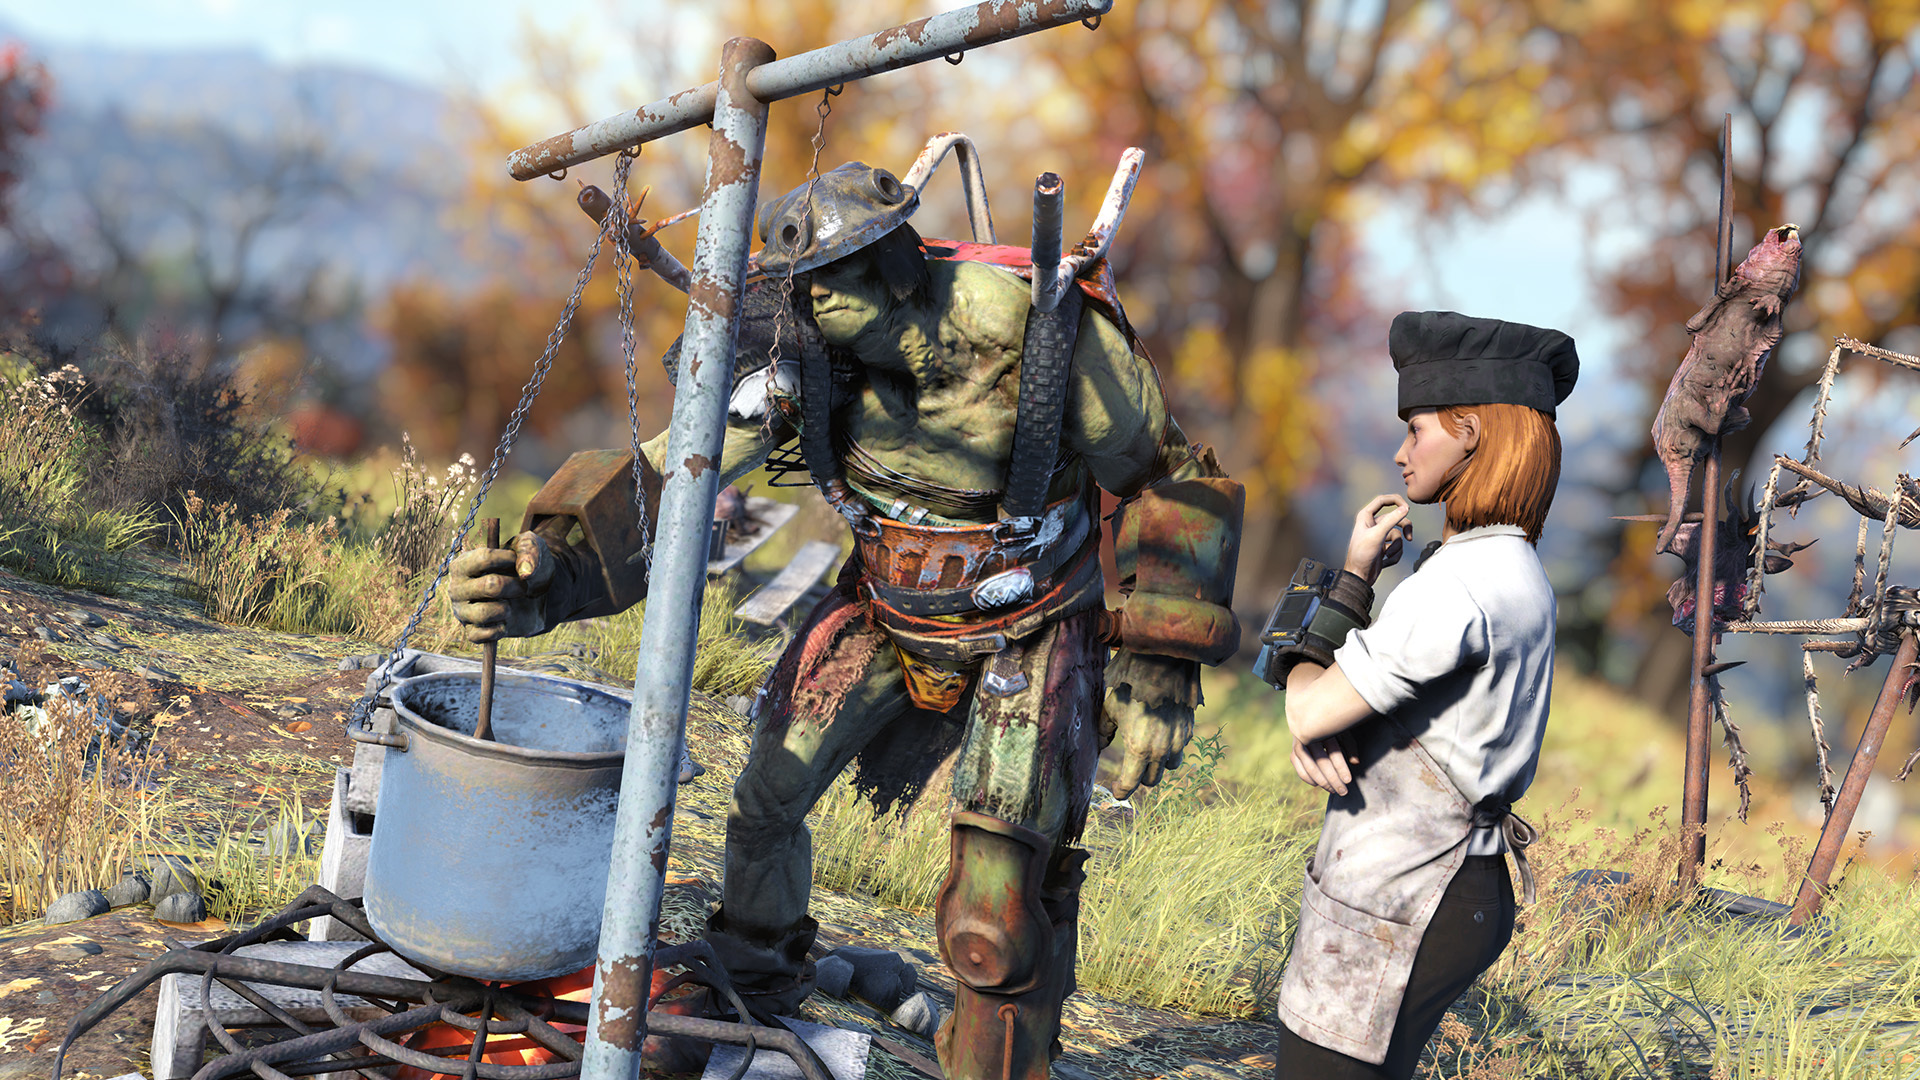 Meat Week cooks up a storm in Fallout 76 this month